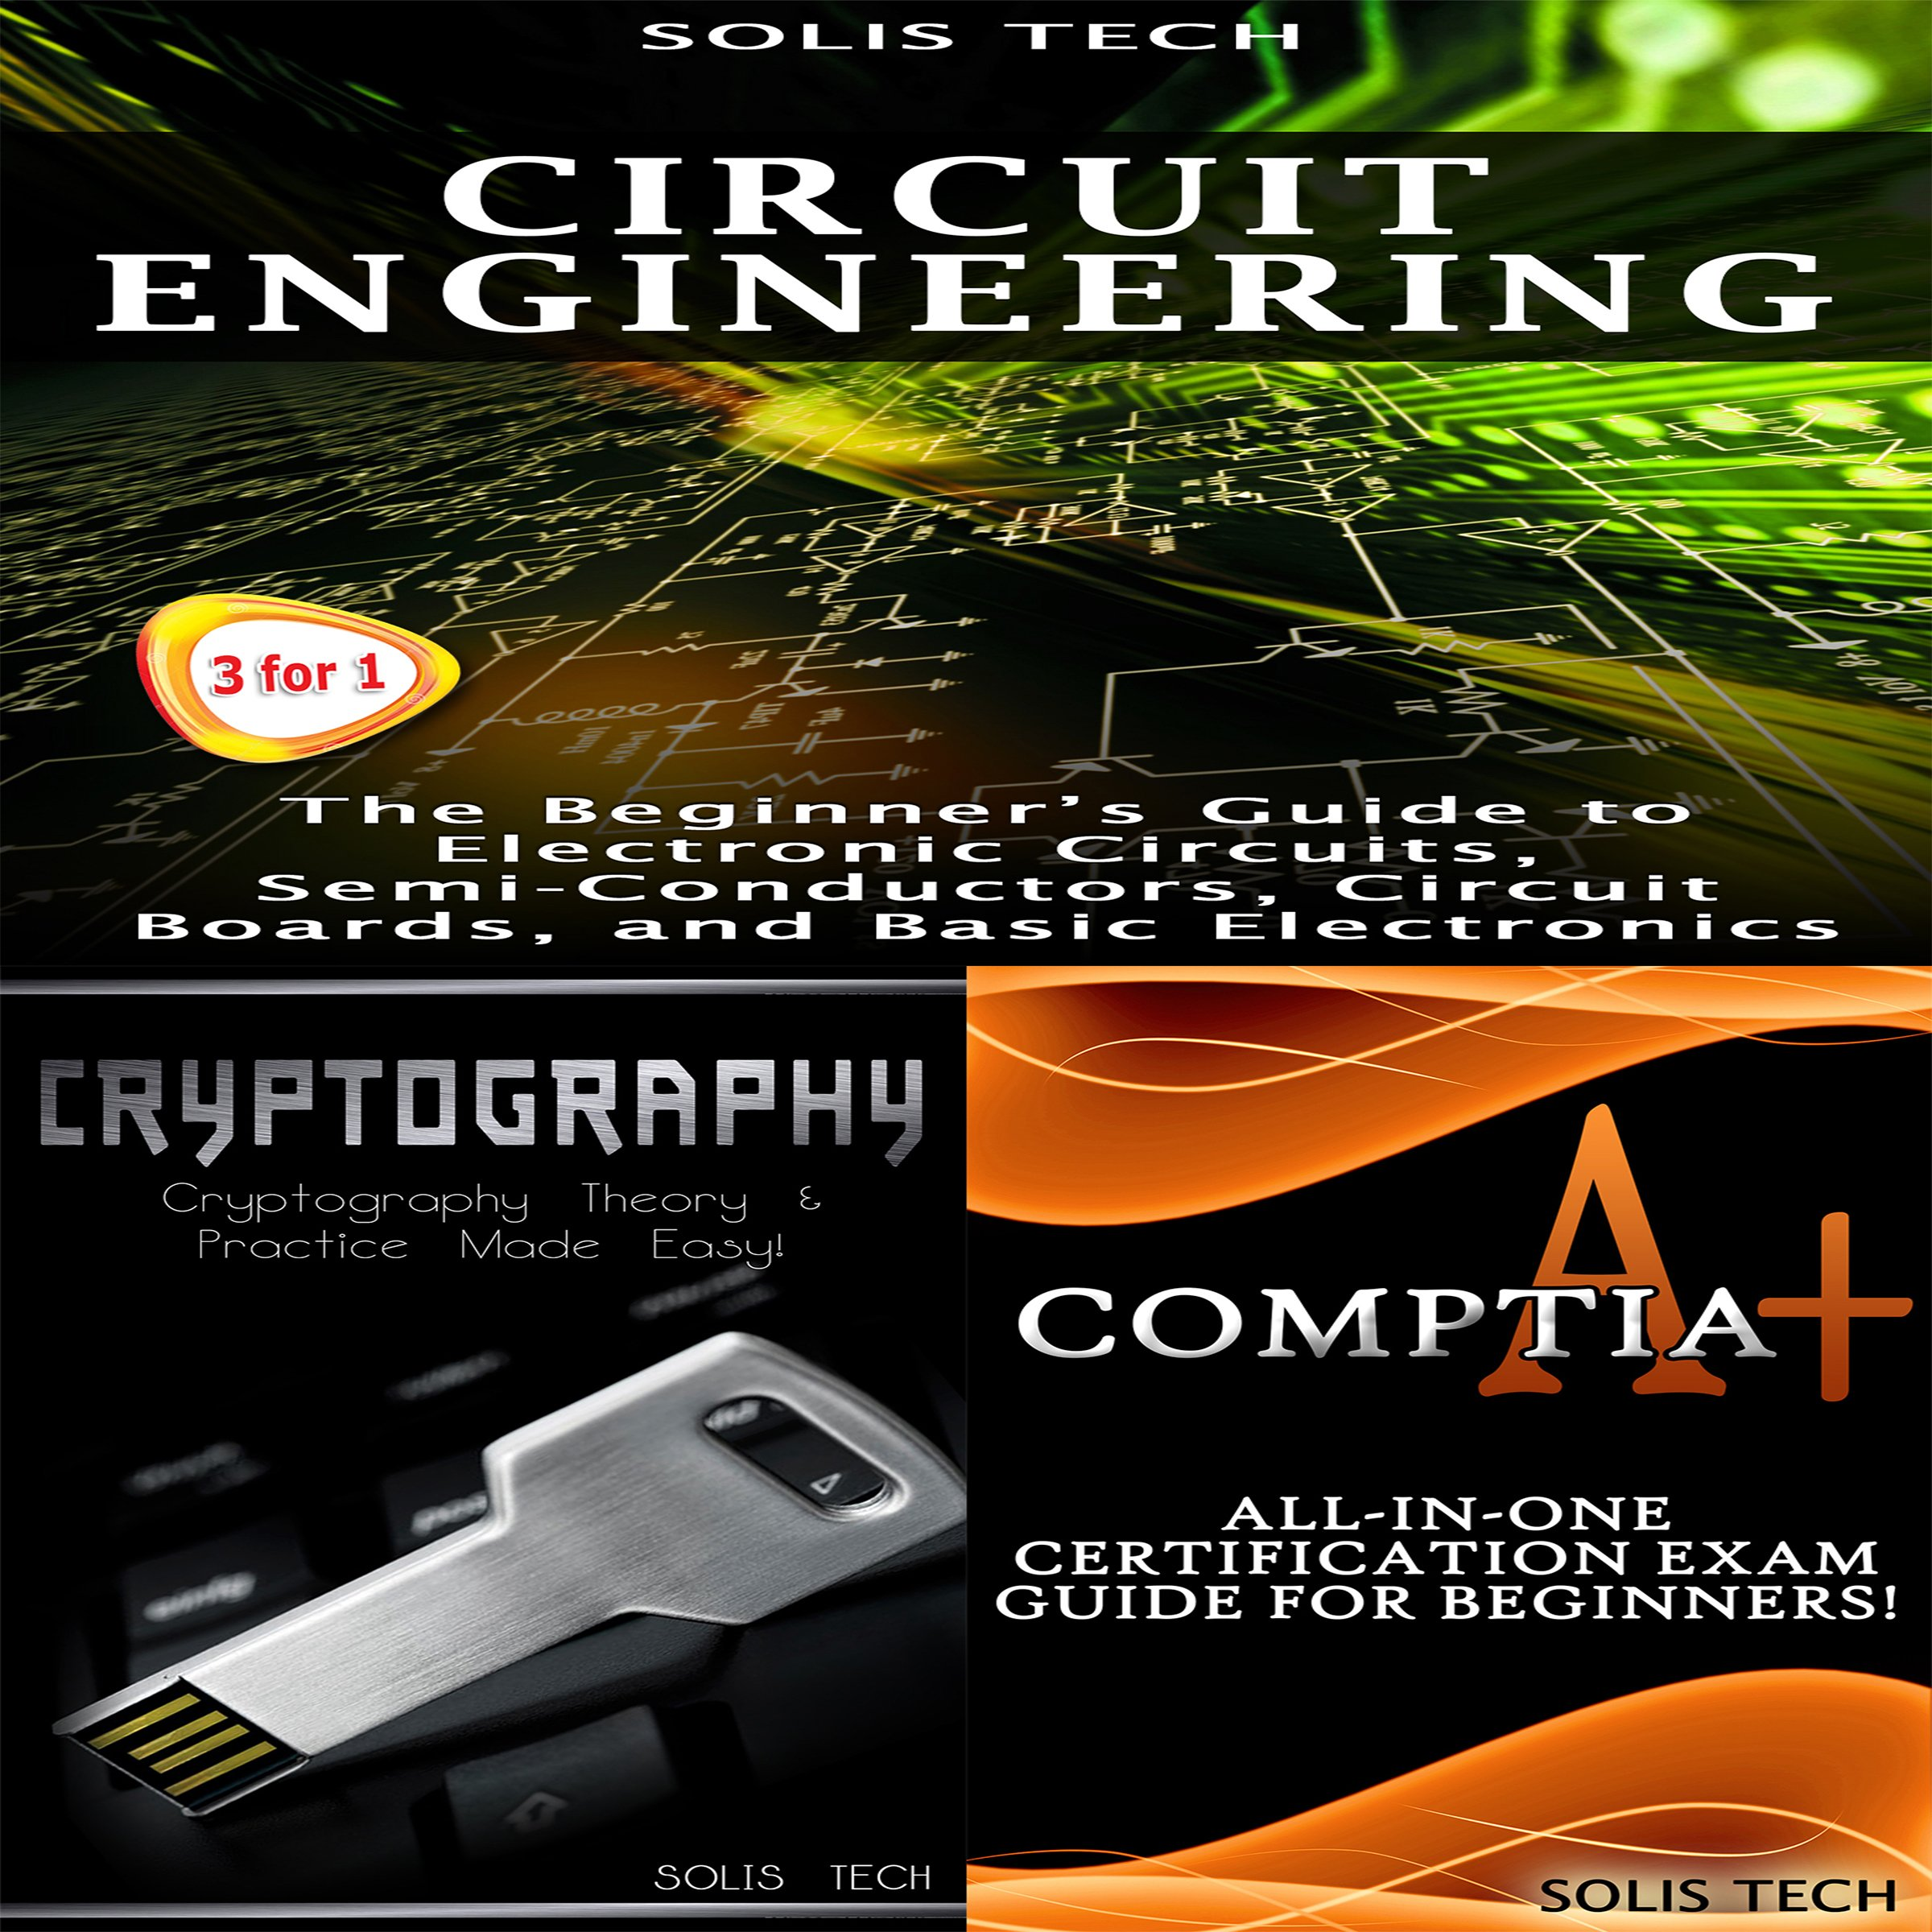 Circuit Engineering + Cryptography + CompTIA A+